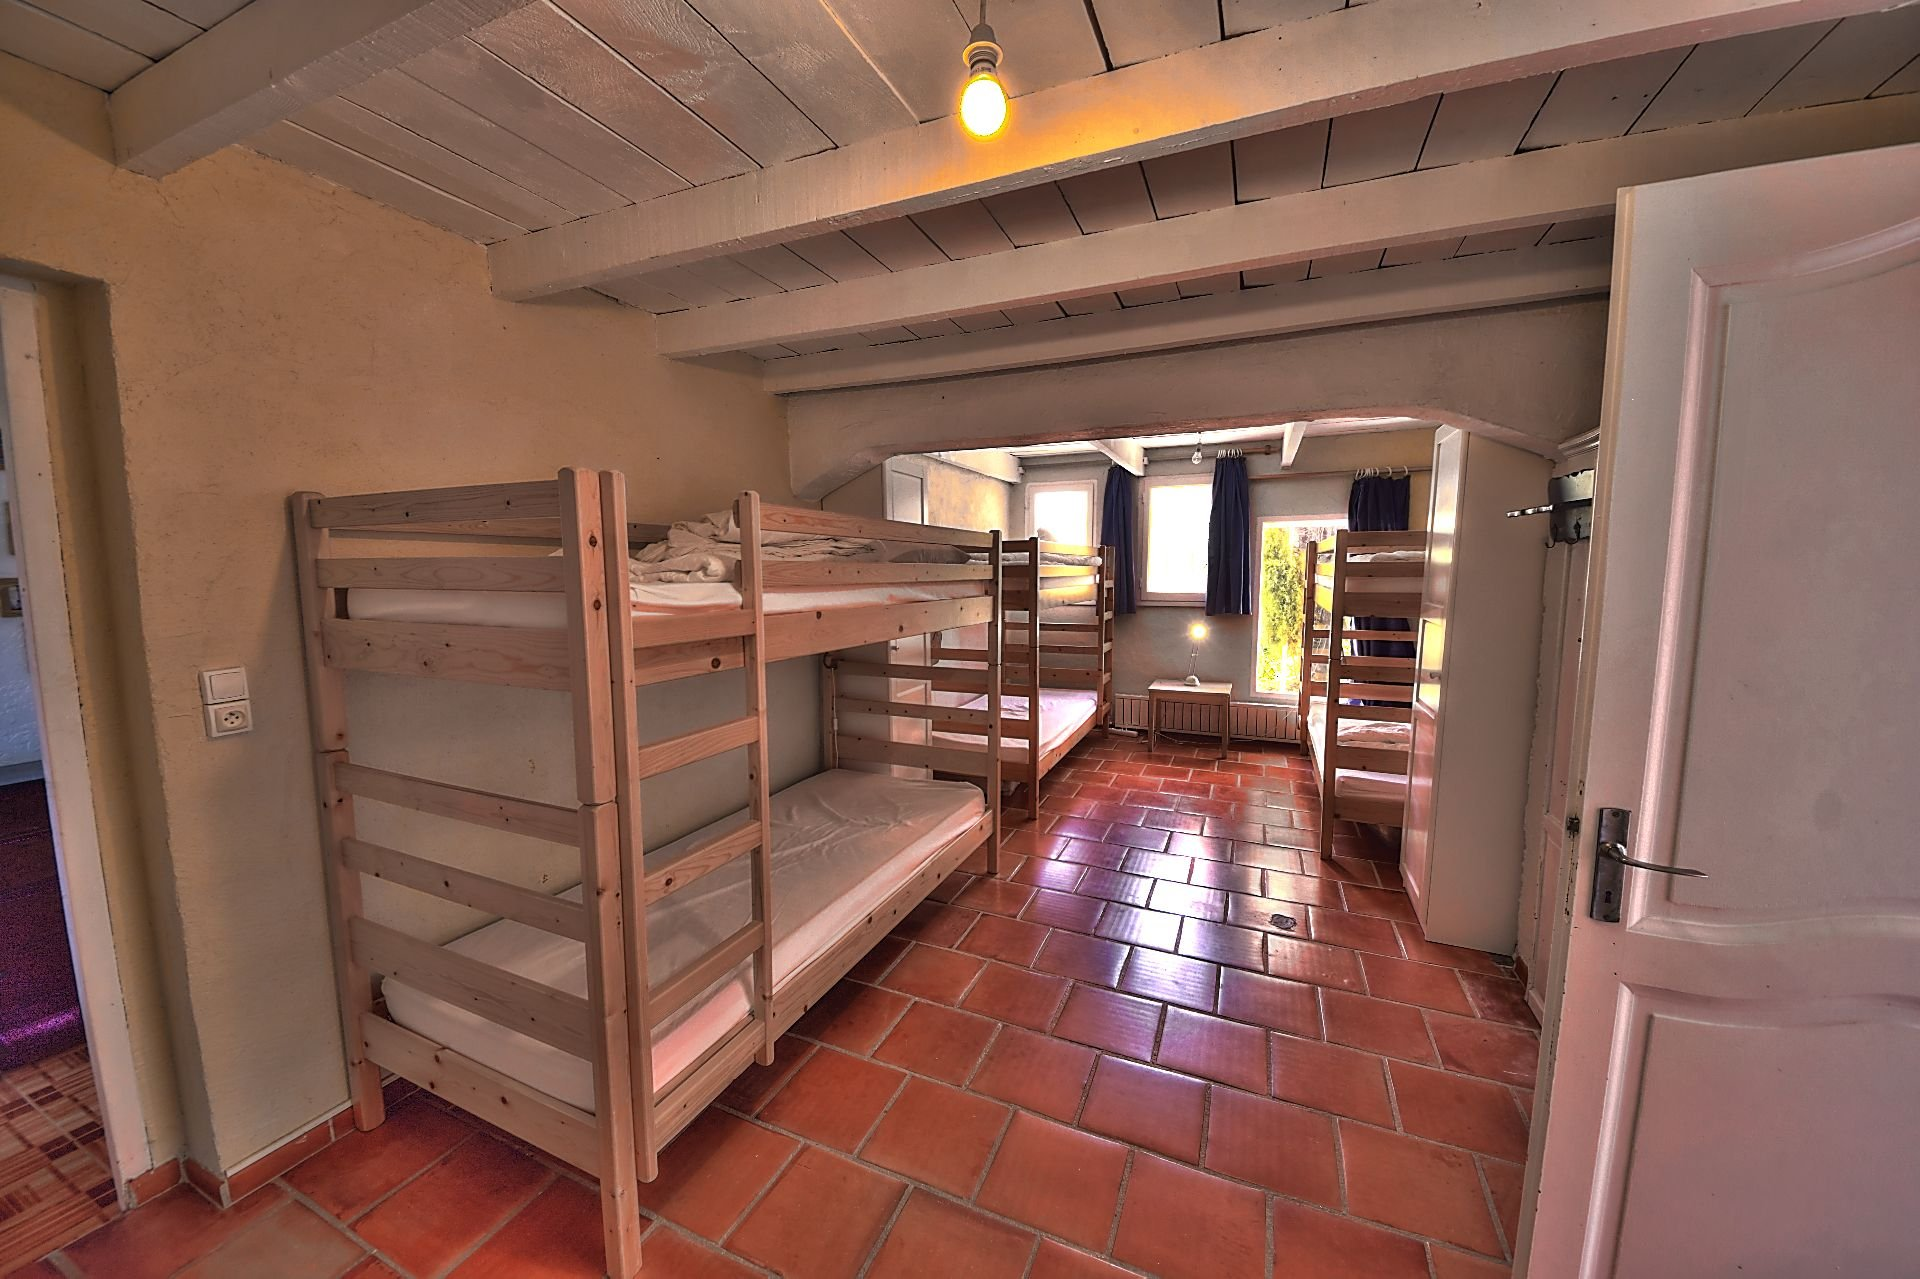 Children's dormitory in the single storey house of Aups